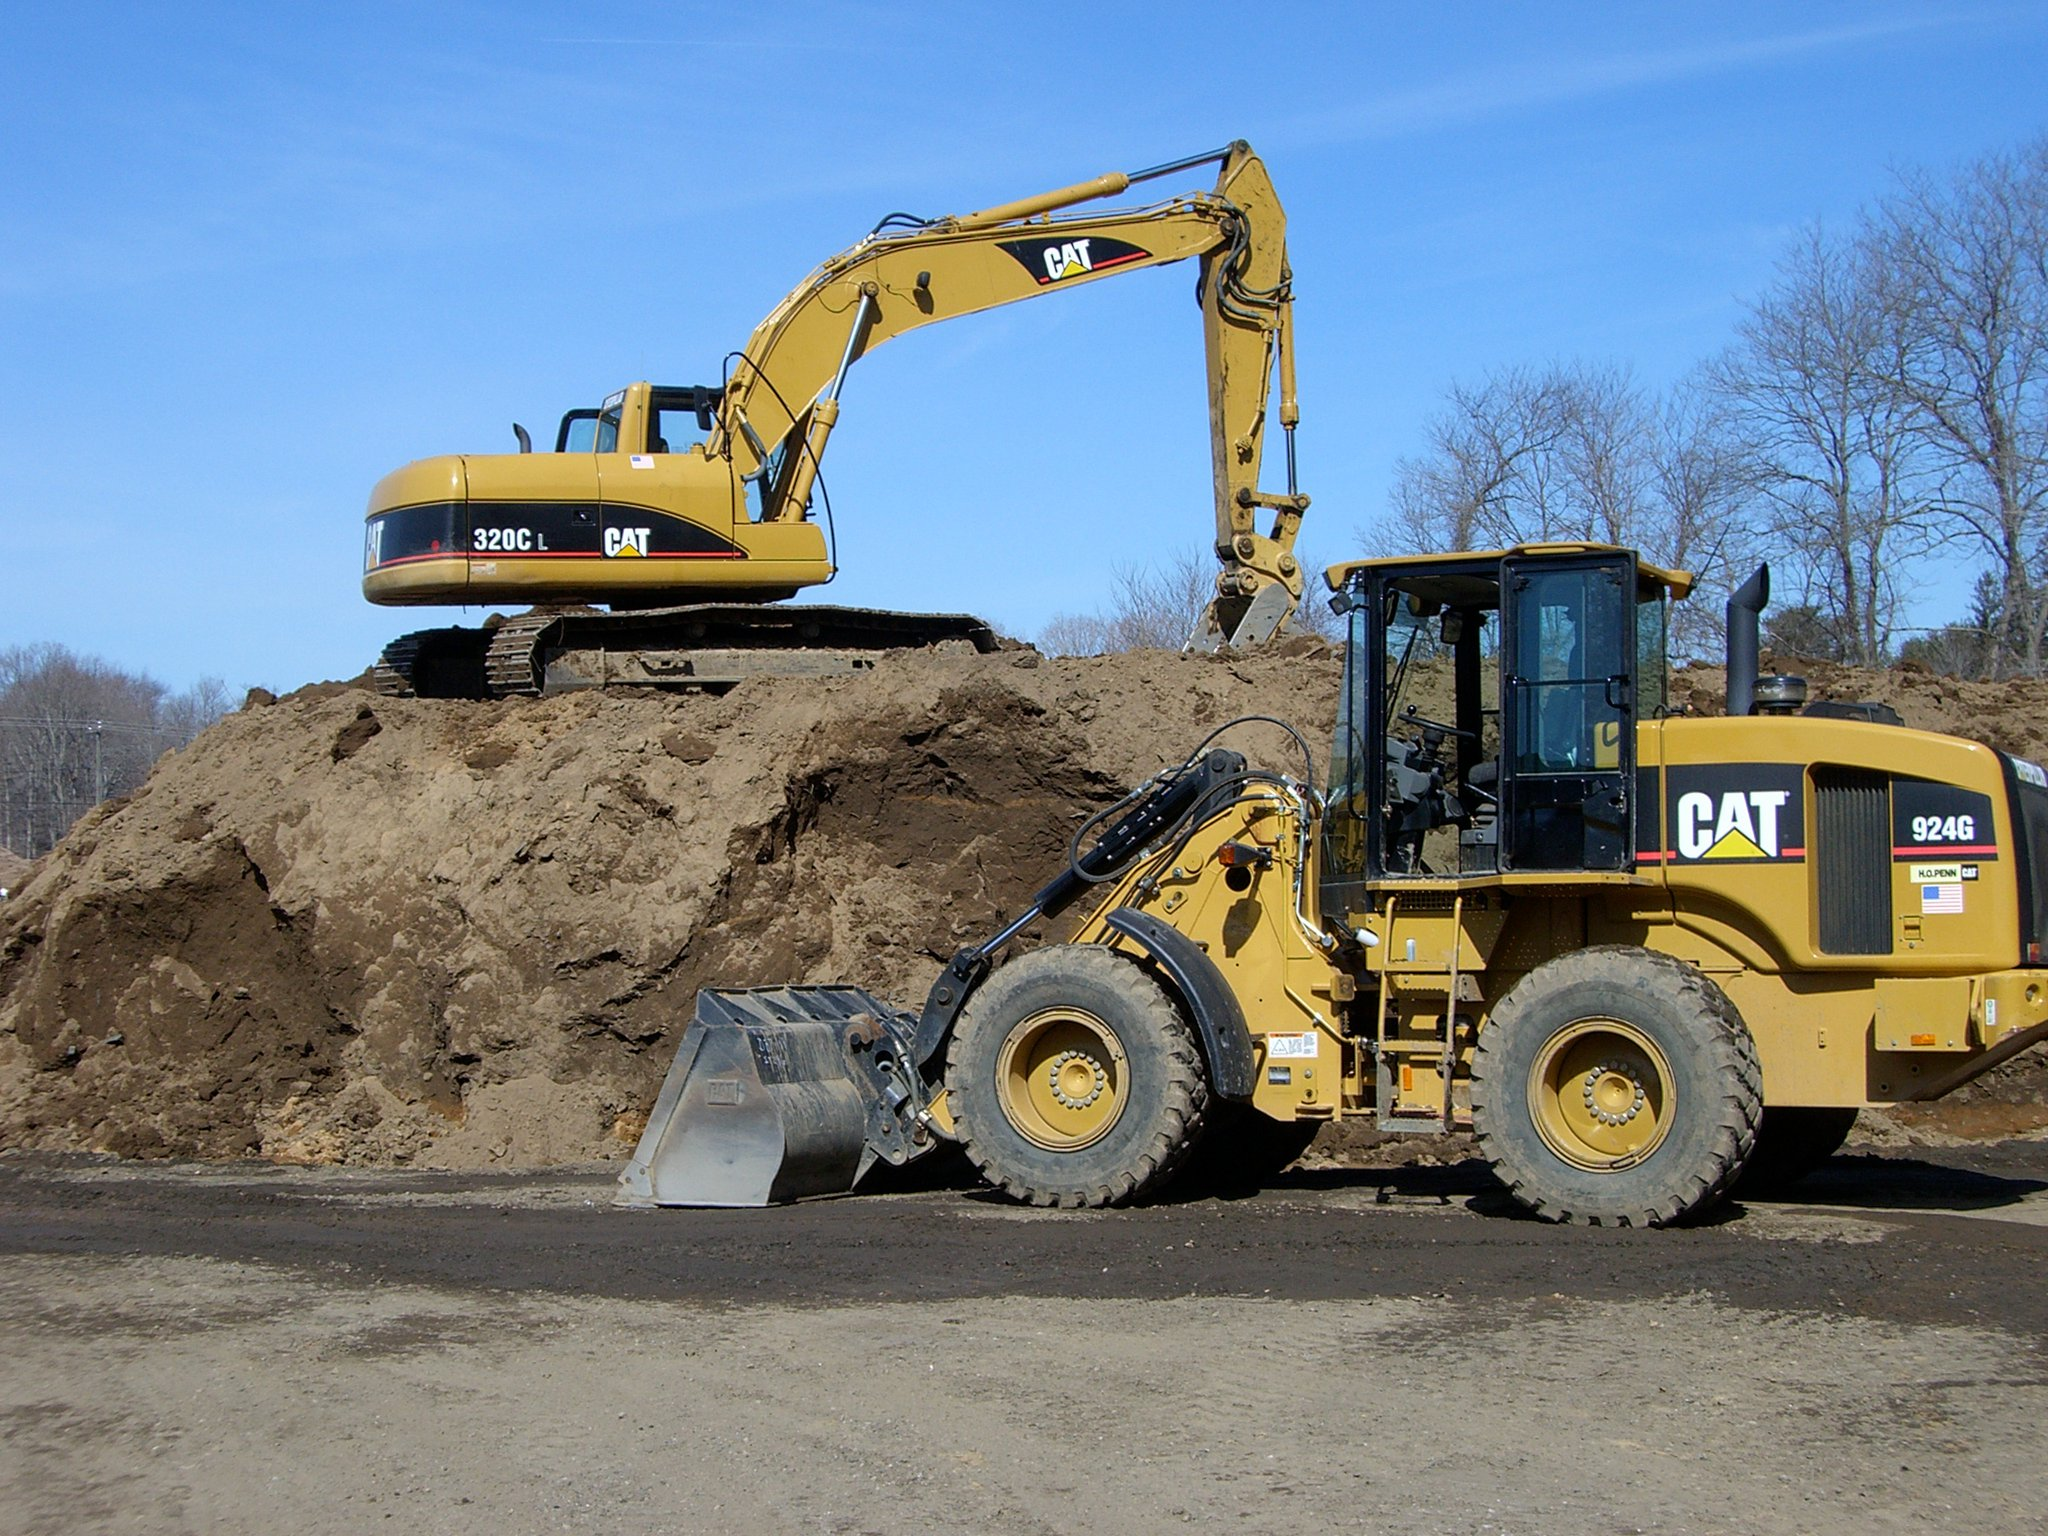 Commercial site work, Essex, Ct